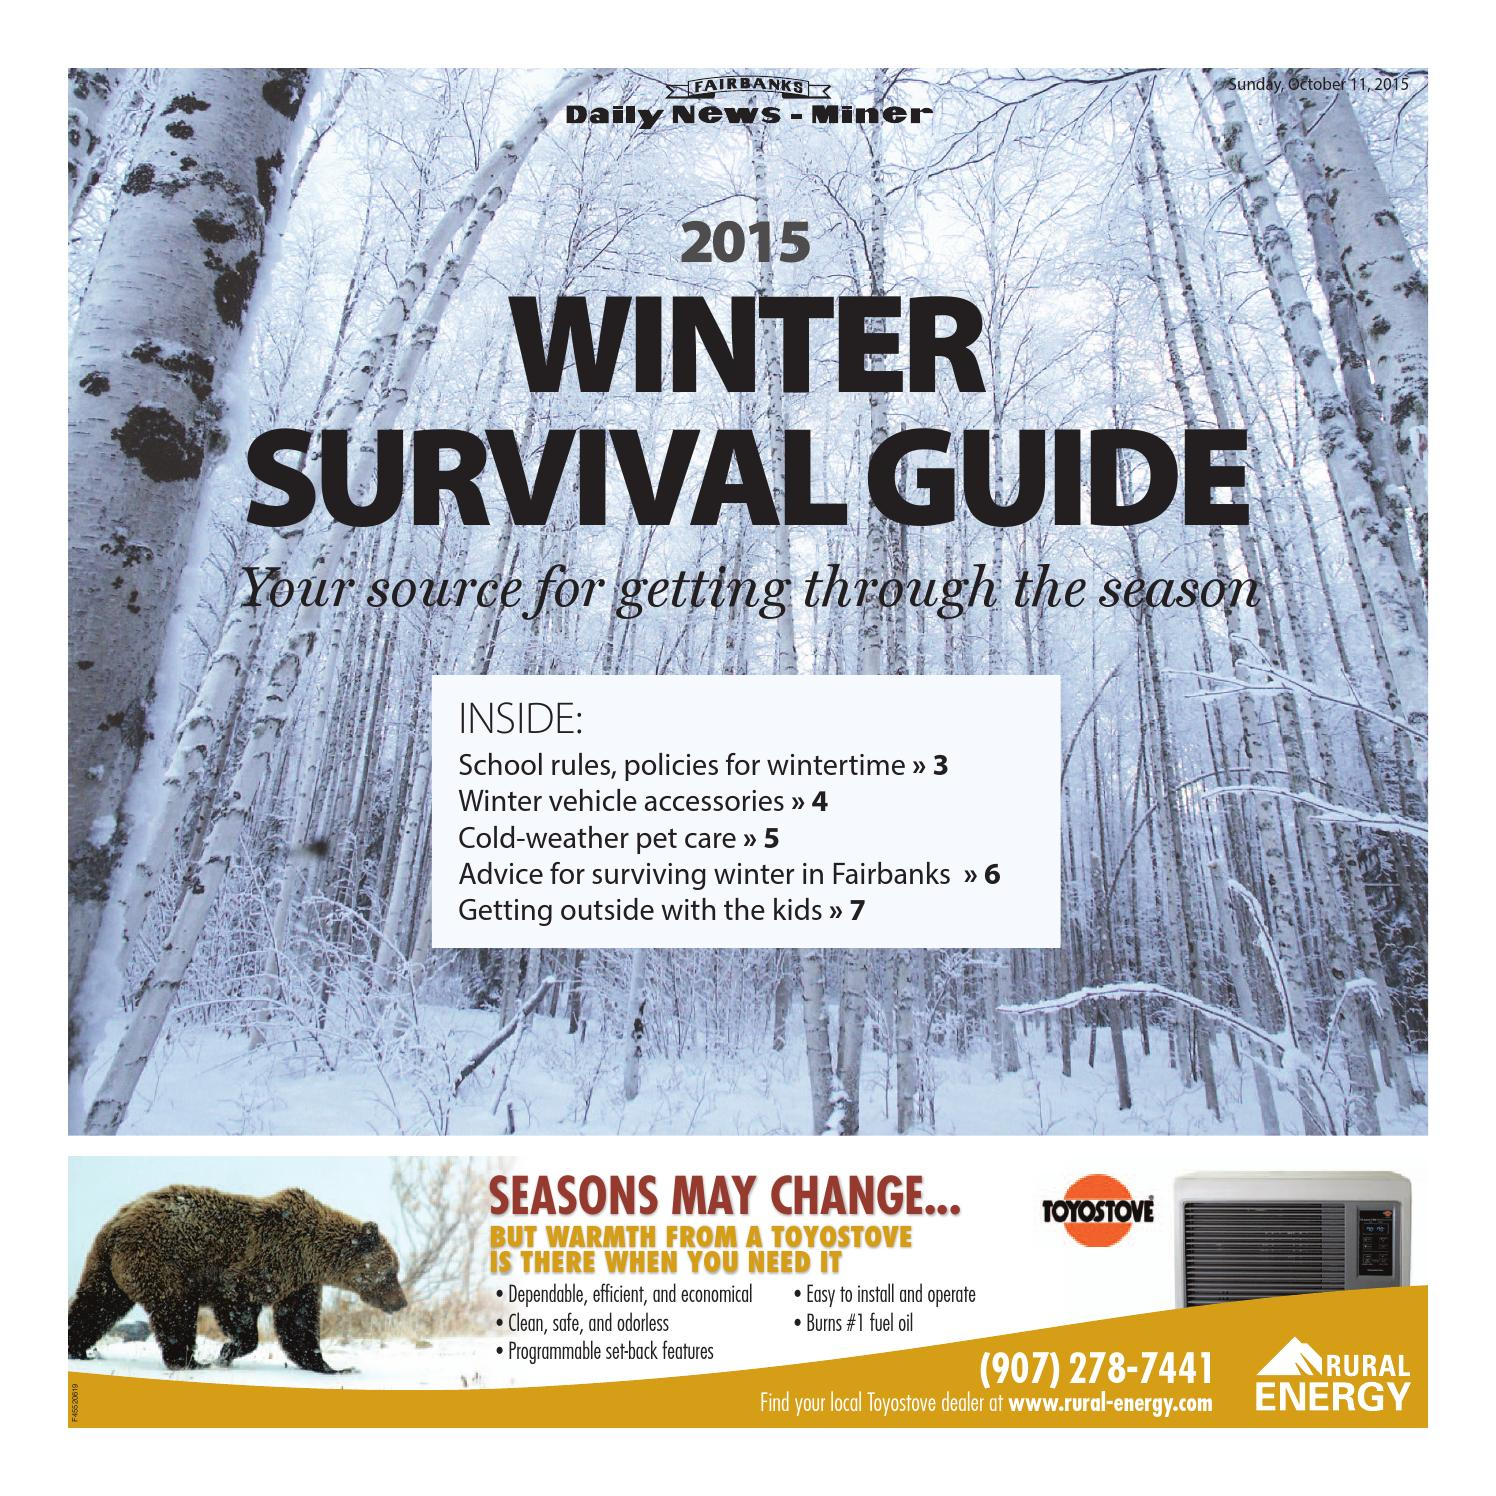 Faltbank Winter Survival Guide 2015 By Fairbanks Daily News Miner Issuu